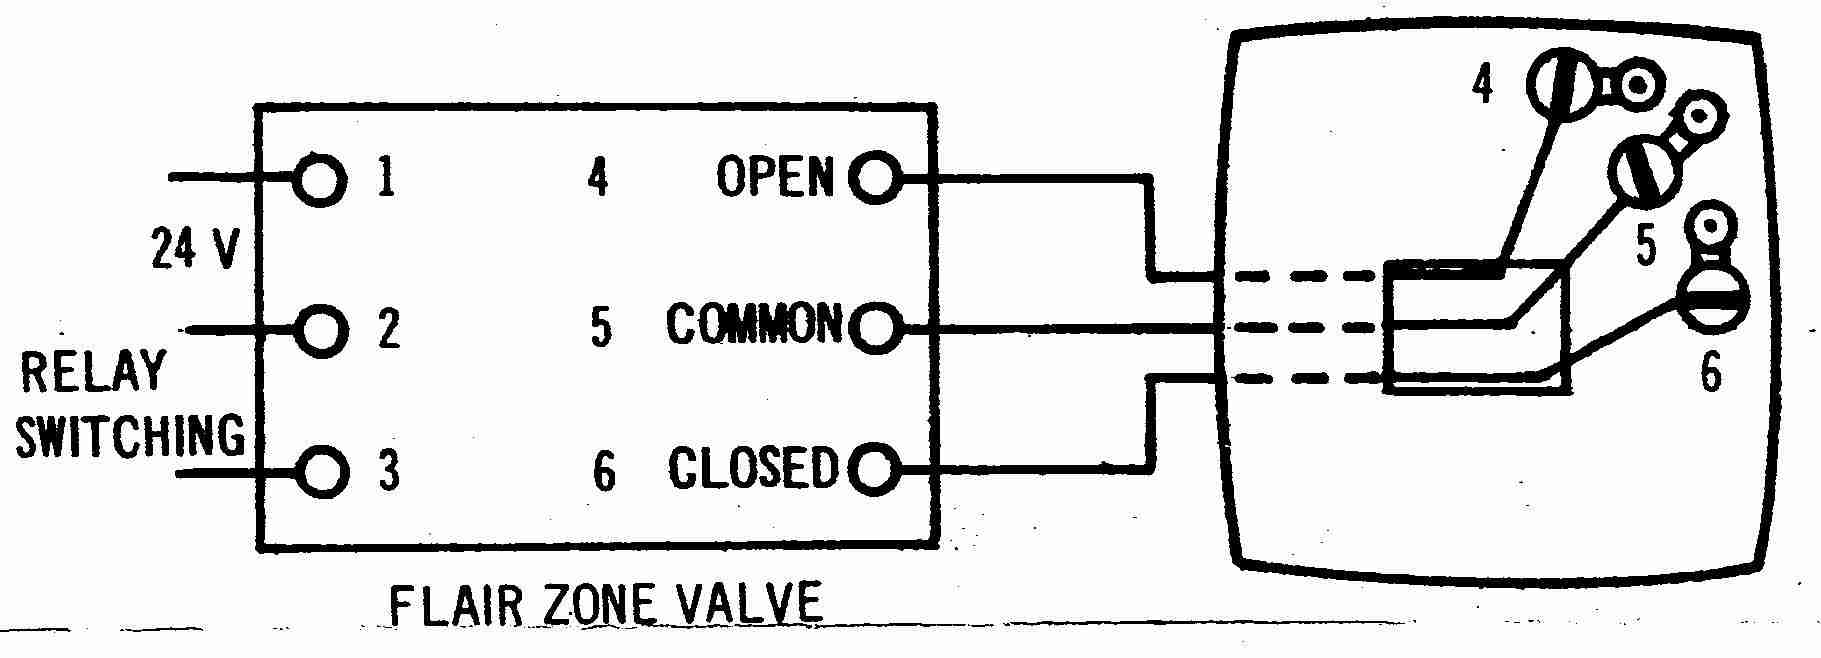 Flair3w_001_DJFc2 zone valve wiring installation & instructions guide to heating honeywell v4043h wiring diagram at n-0.co